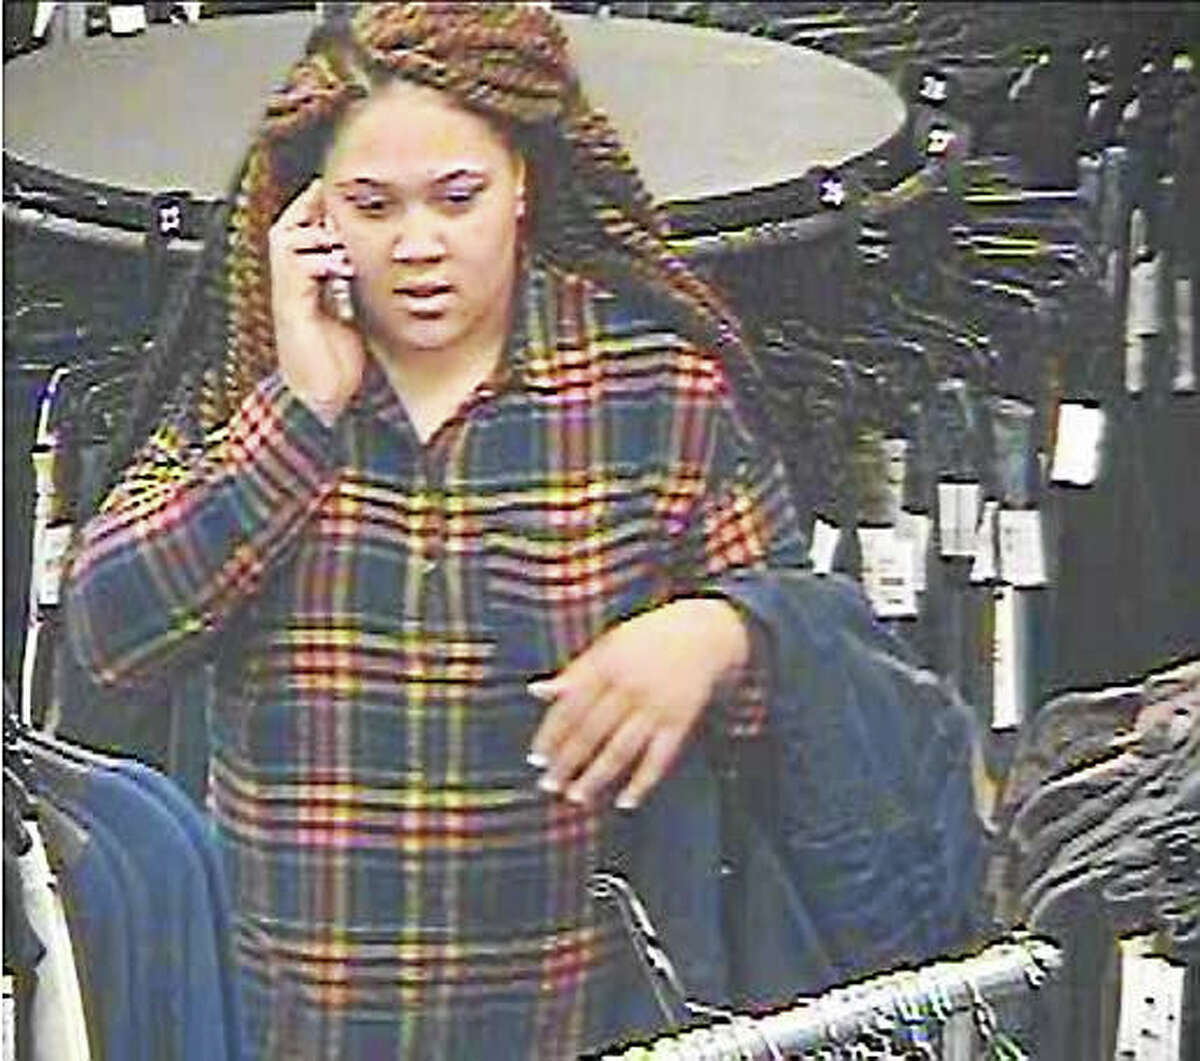 Clinton police are asking the public to help them identify a woman who allegedly stole items from a local outlet store over the weekend before fleeing in a mini-van registered in New Haven.